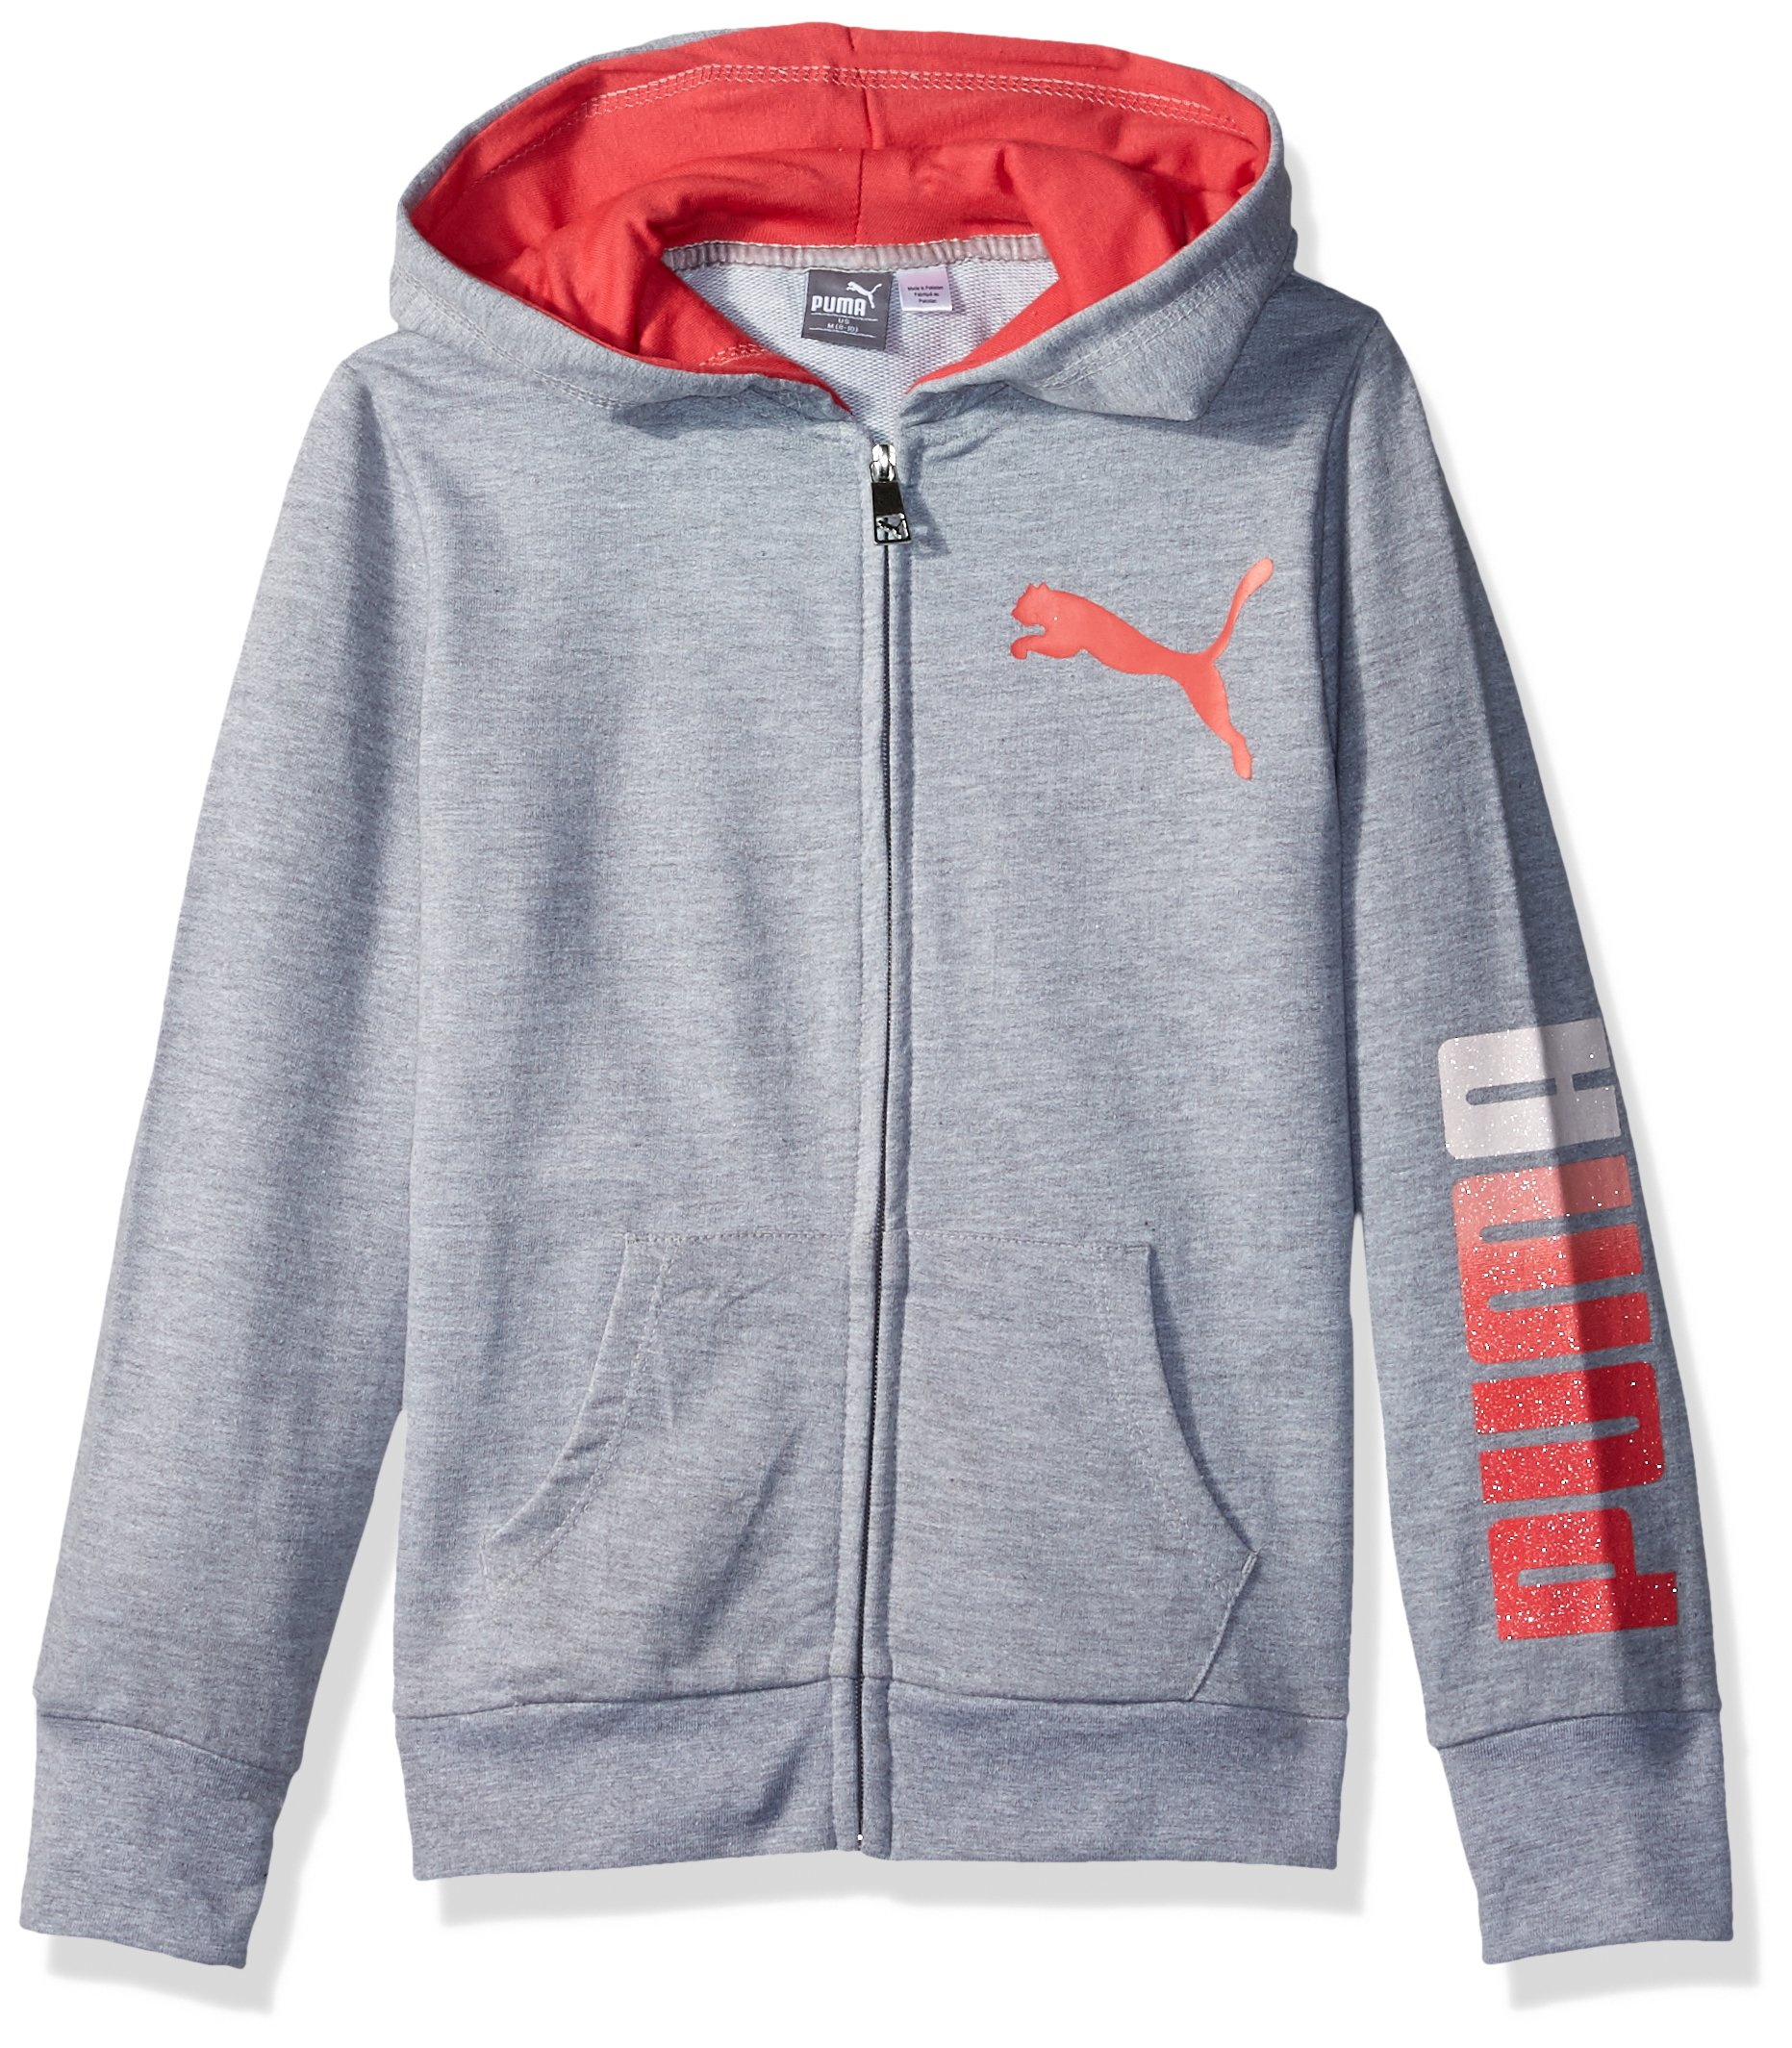 PUMA Big Girls' Full Zip Hoodie, Light Heather Grey, Small (7)